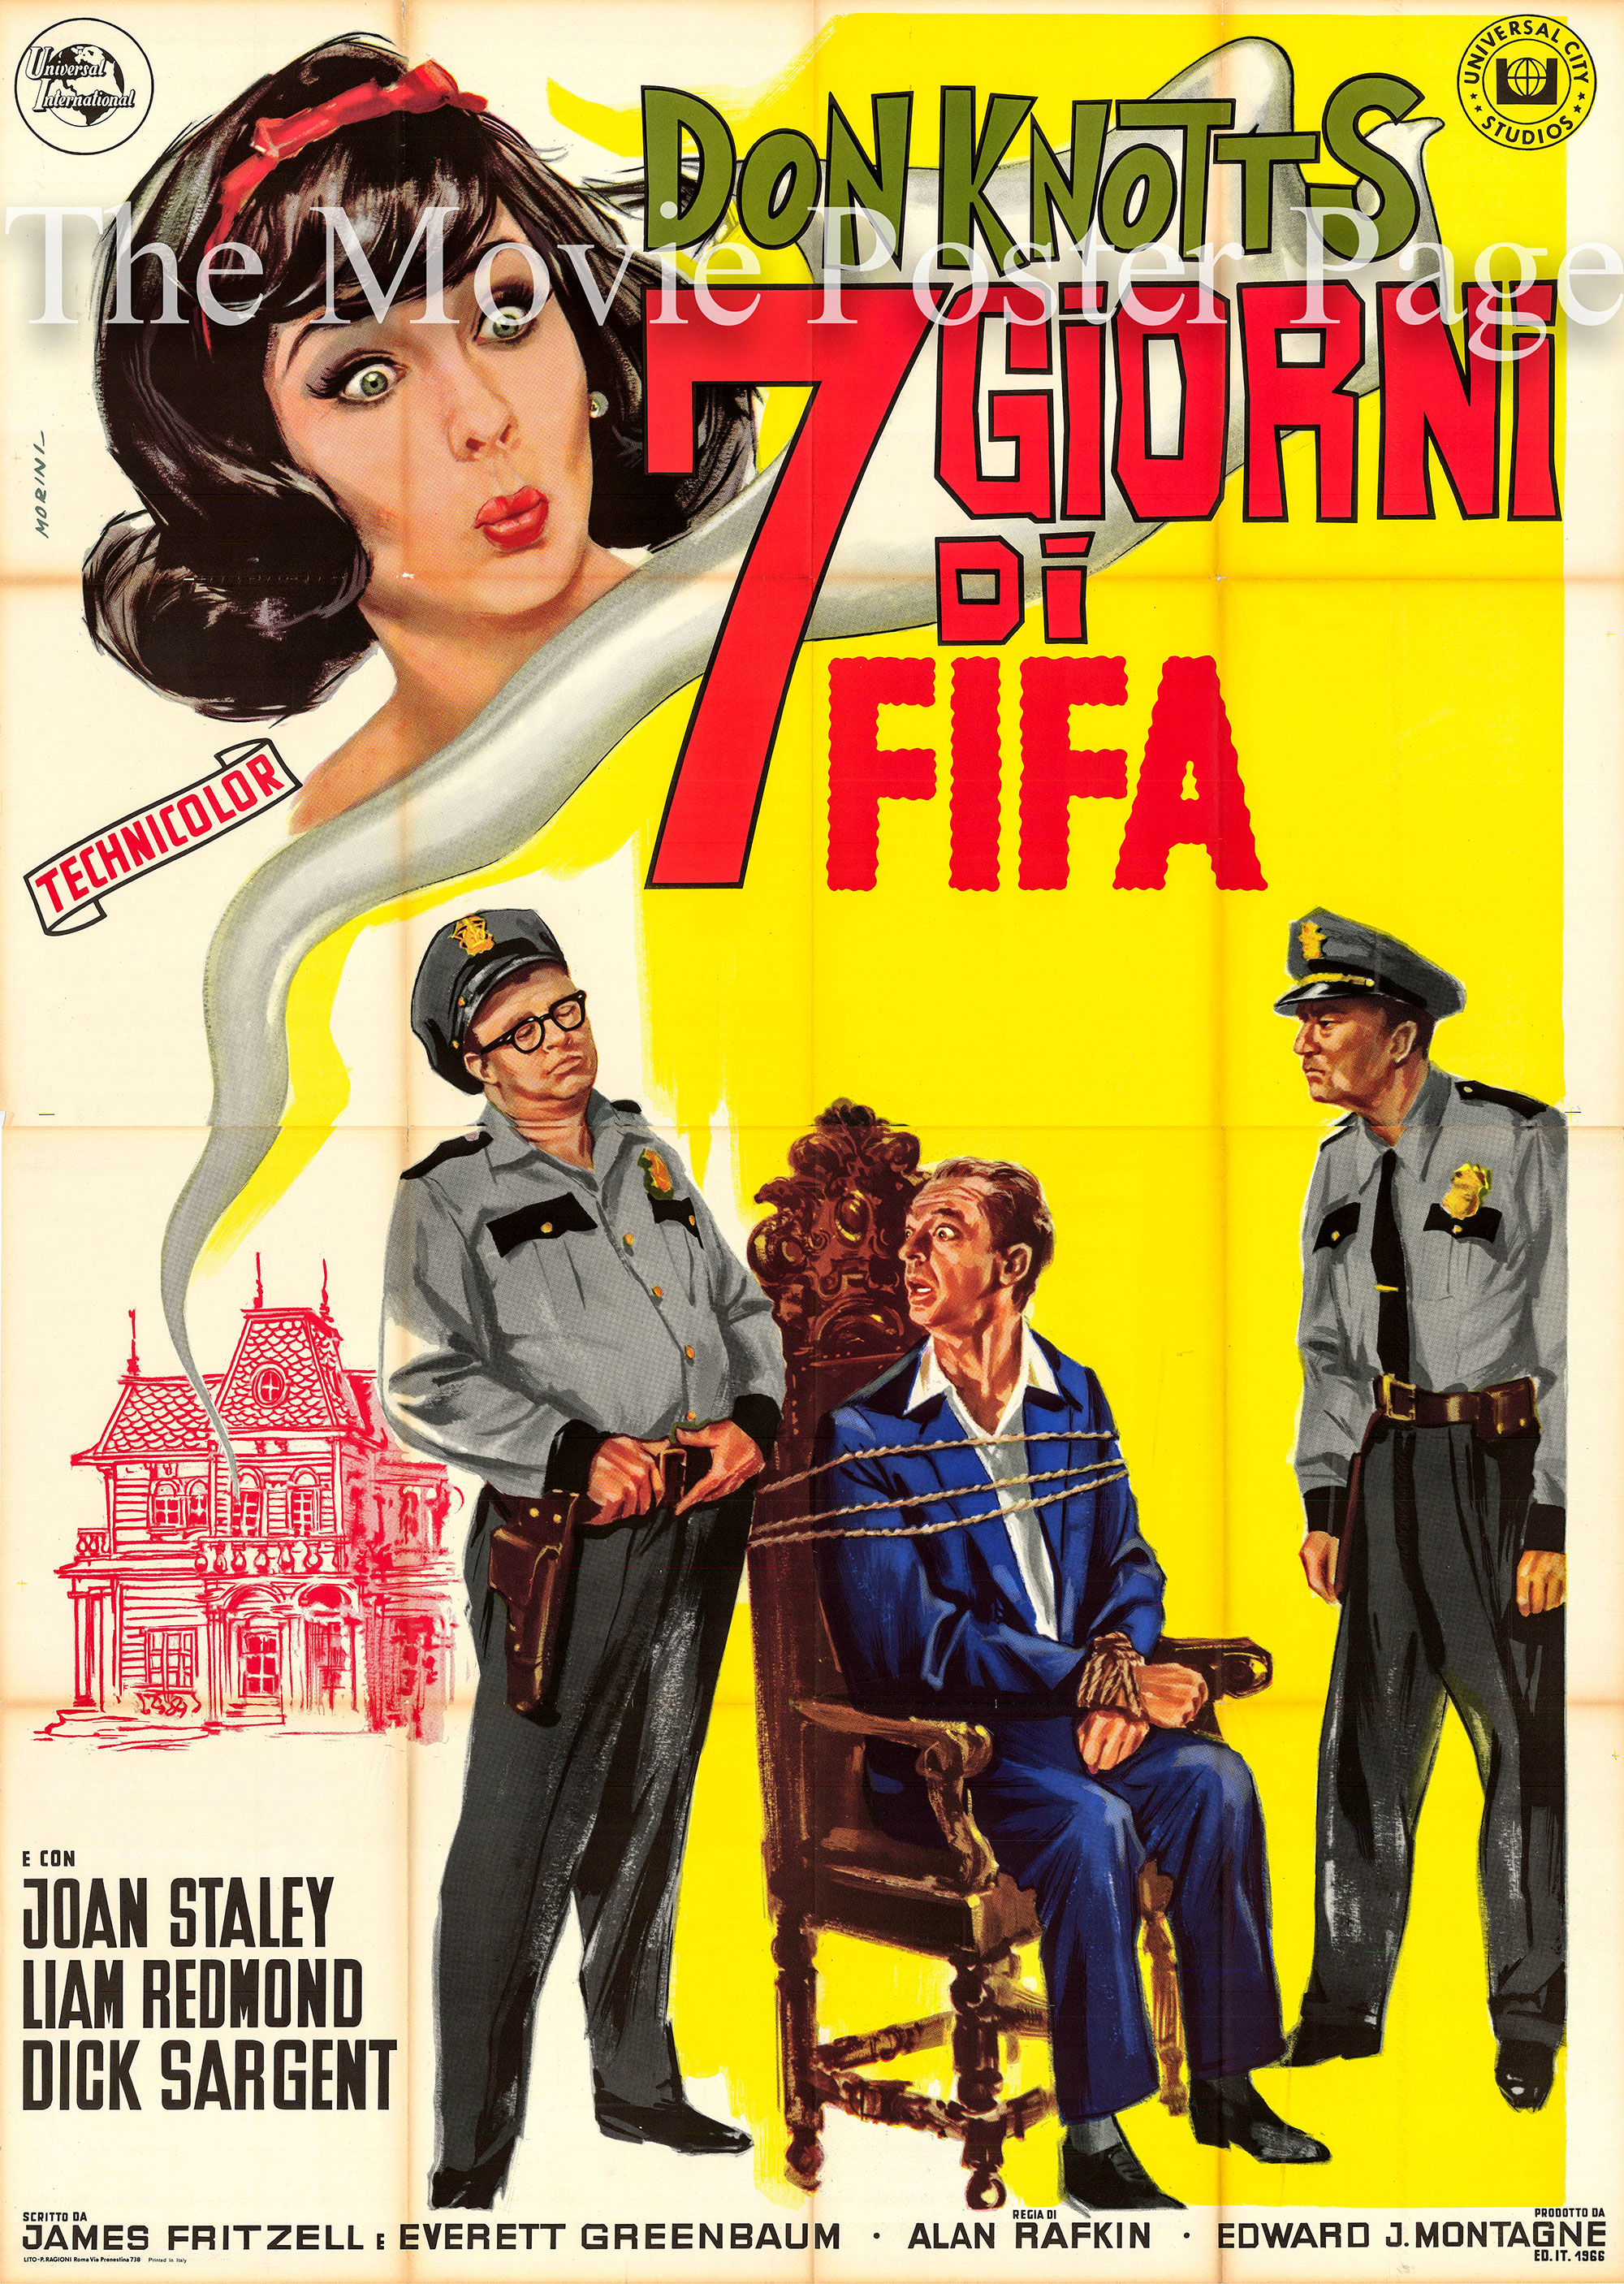 Pictured is an Italian four-sheet promotional poster for the 1966 Alan Rafkin film The Ghost and Mr. Chicken starring Don Knotts.